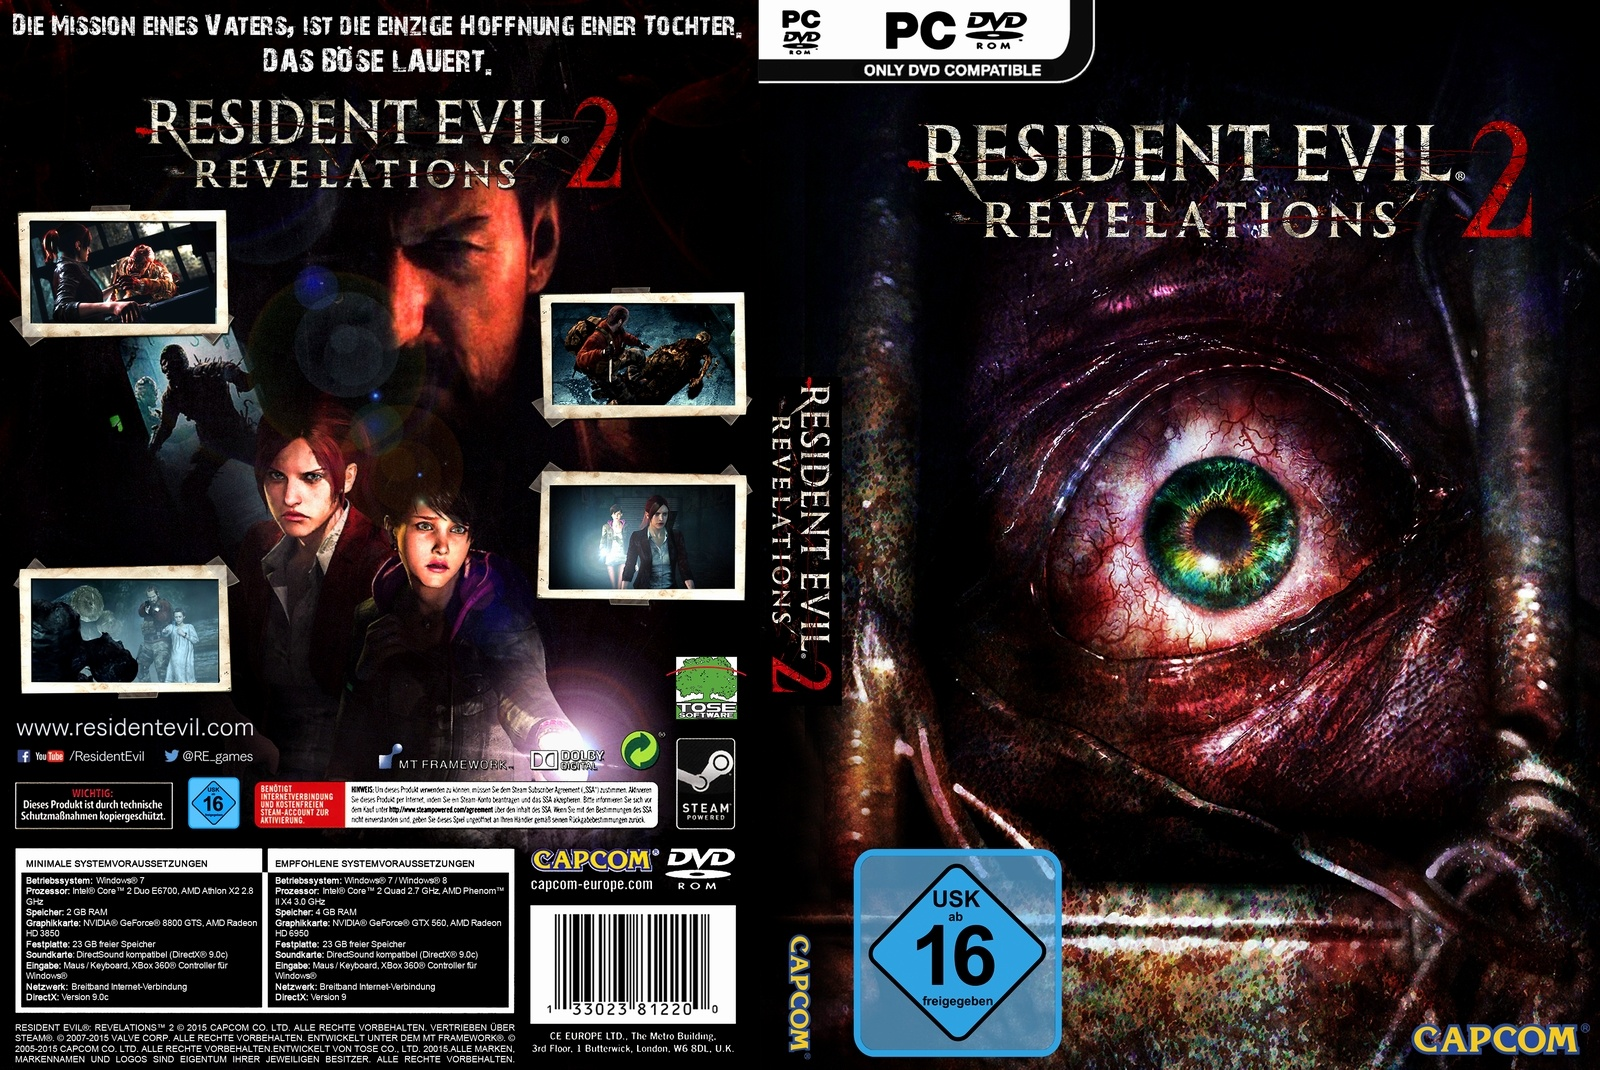 RESIDENT EVIL REVELATIONS 2 box cover